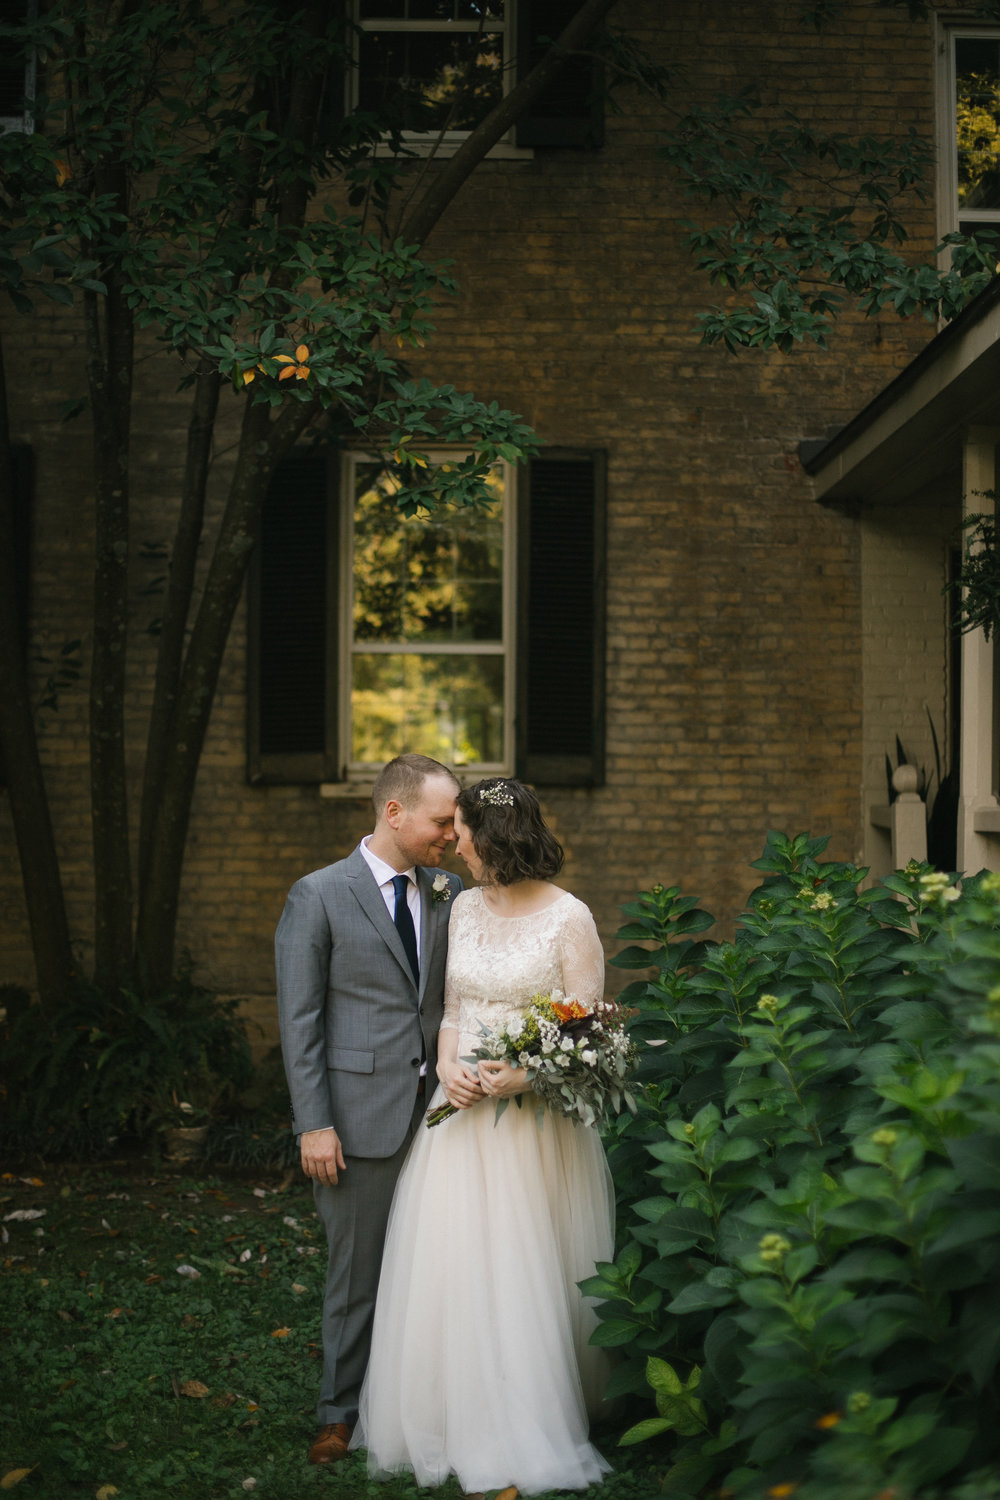 2018.10.06_BrieMatt_Wedding_Starks-0019.jpg